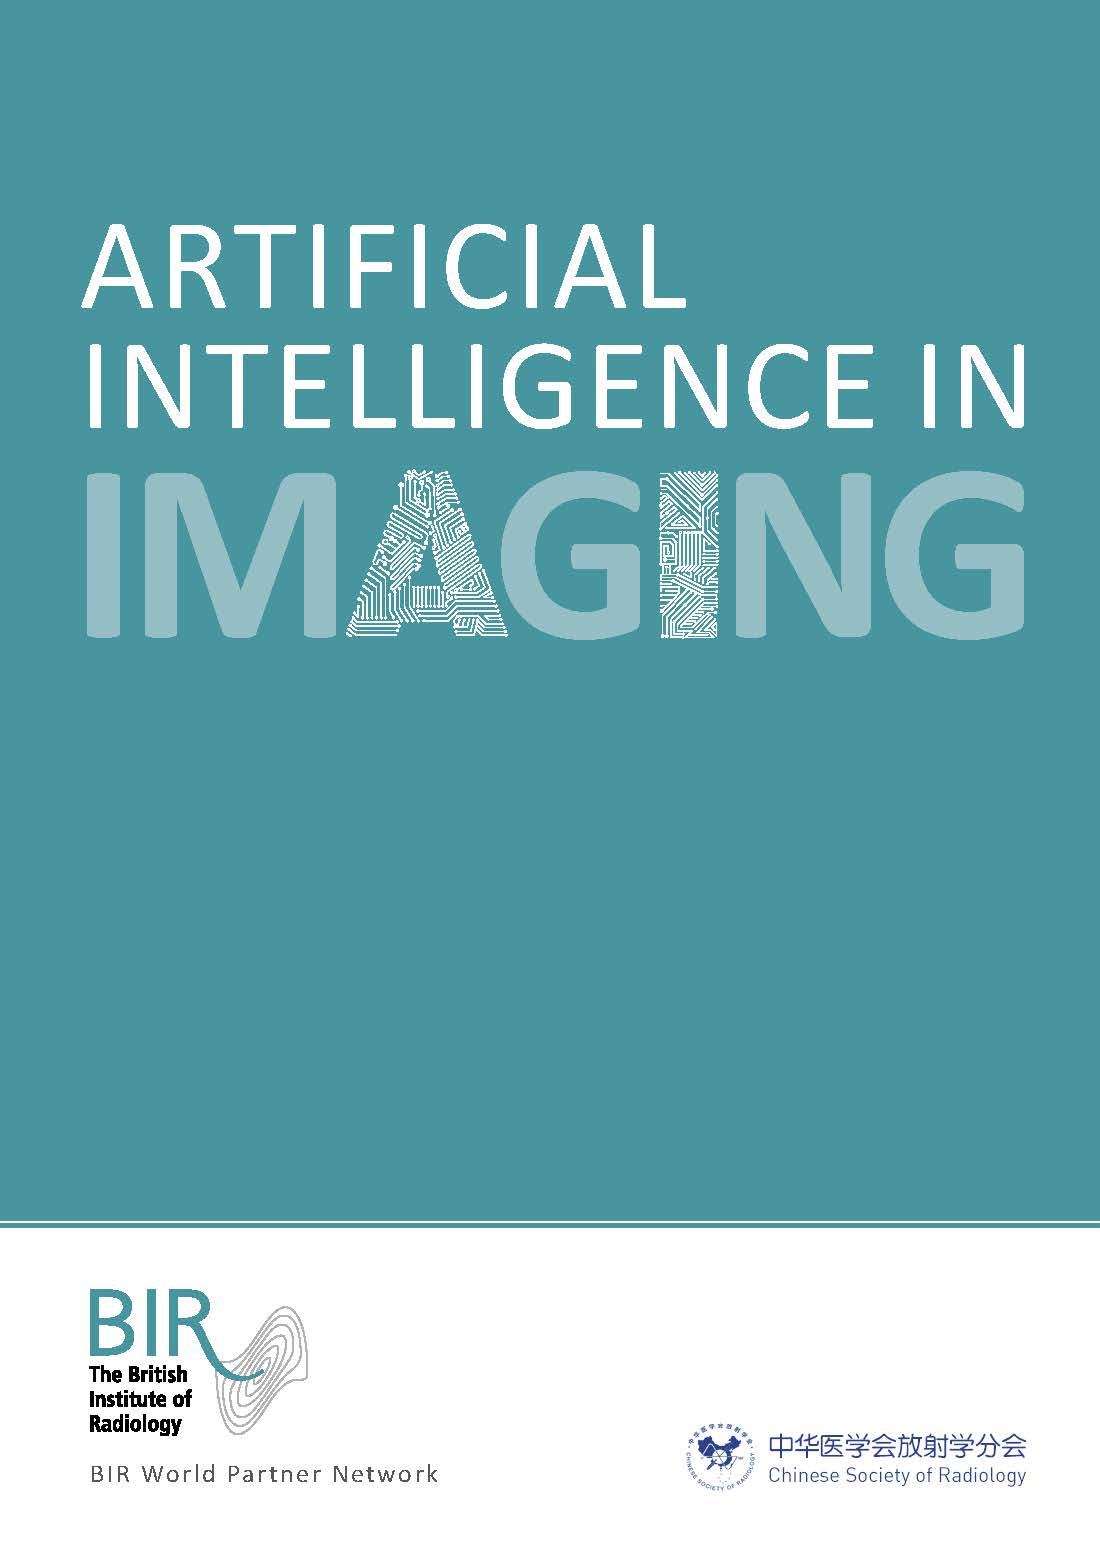 Artificial intelligence in imaging